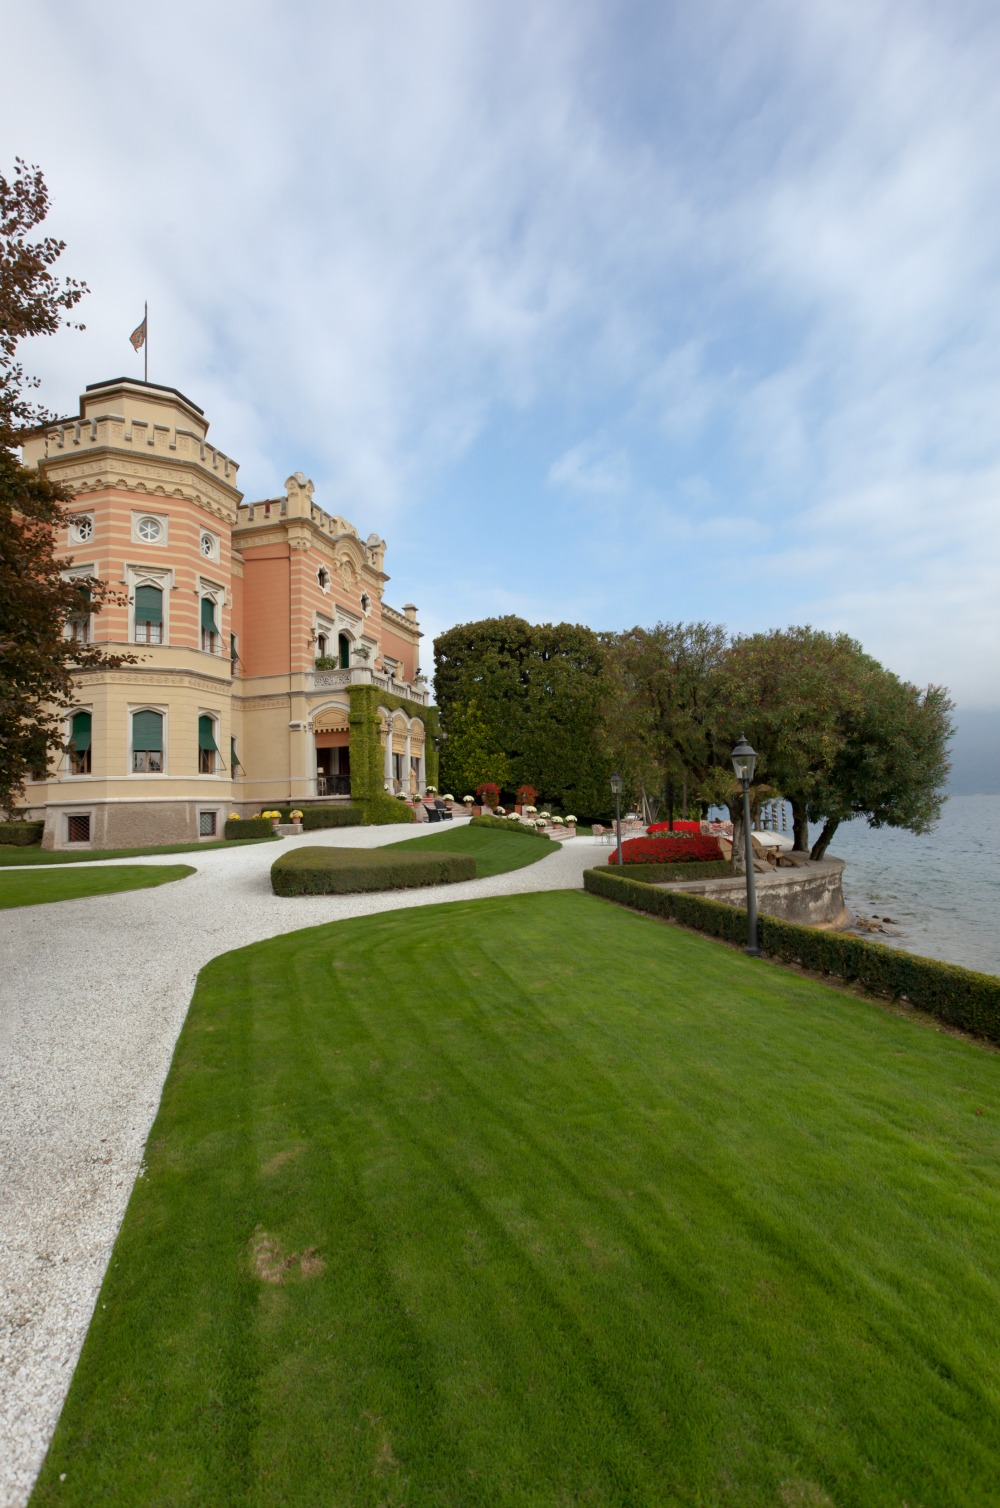 WWII hotels and Airbnbs around the world | Villa Feltrinelli, Mussolini's Castle on Lake Garda in Gargnano, Italy